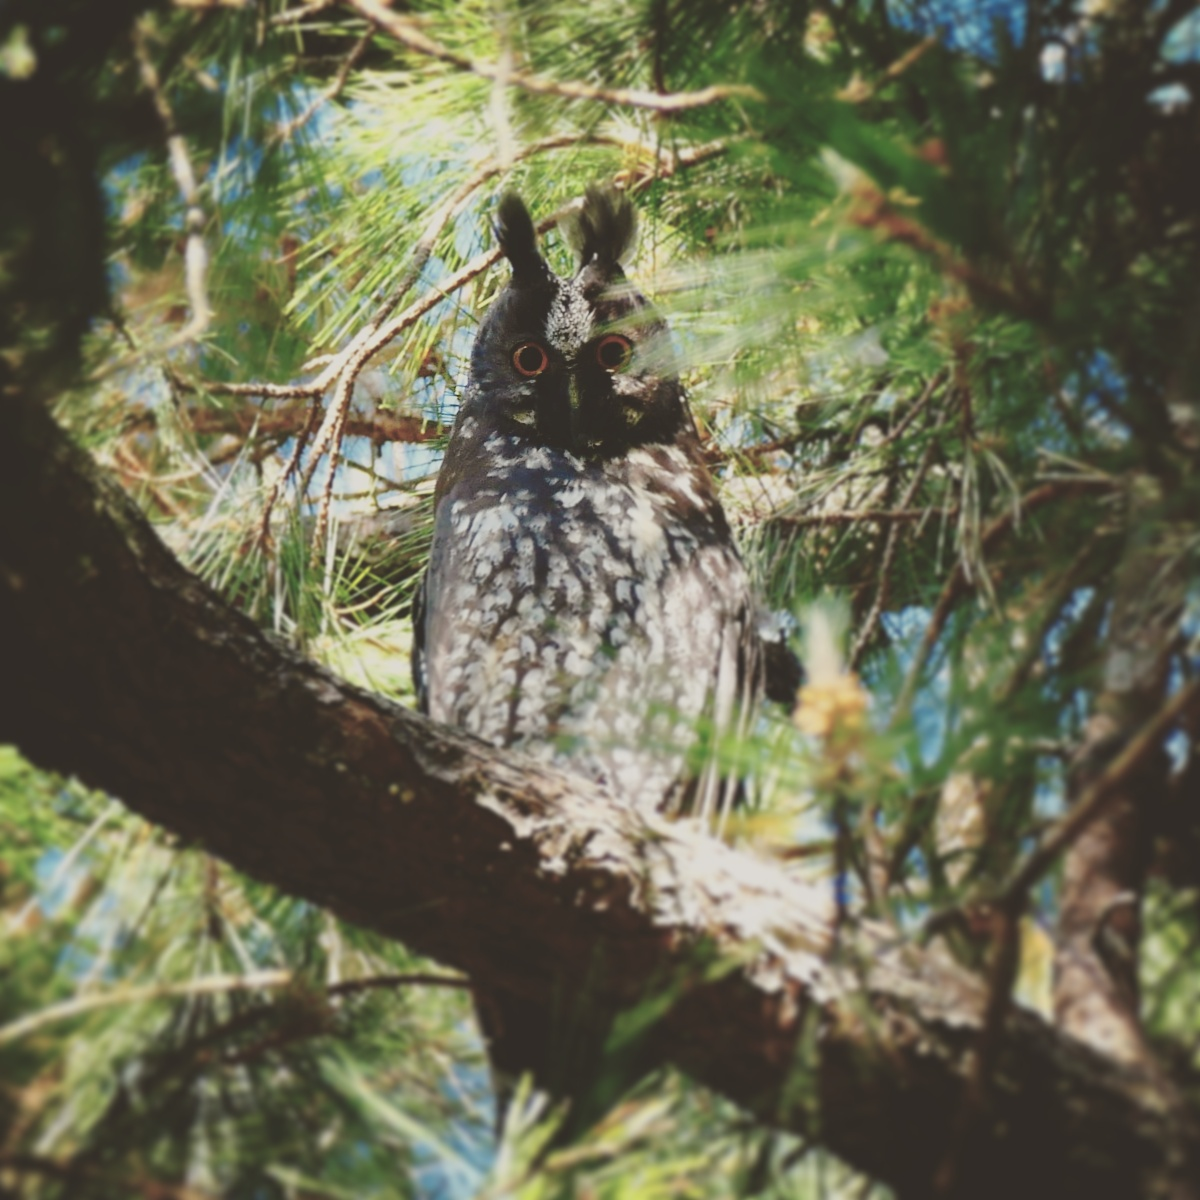 A Stygian Owl peers down from its day roost in the Tufted Jay Preserve. Noah Strycker